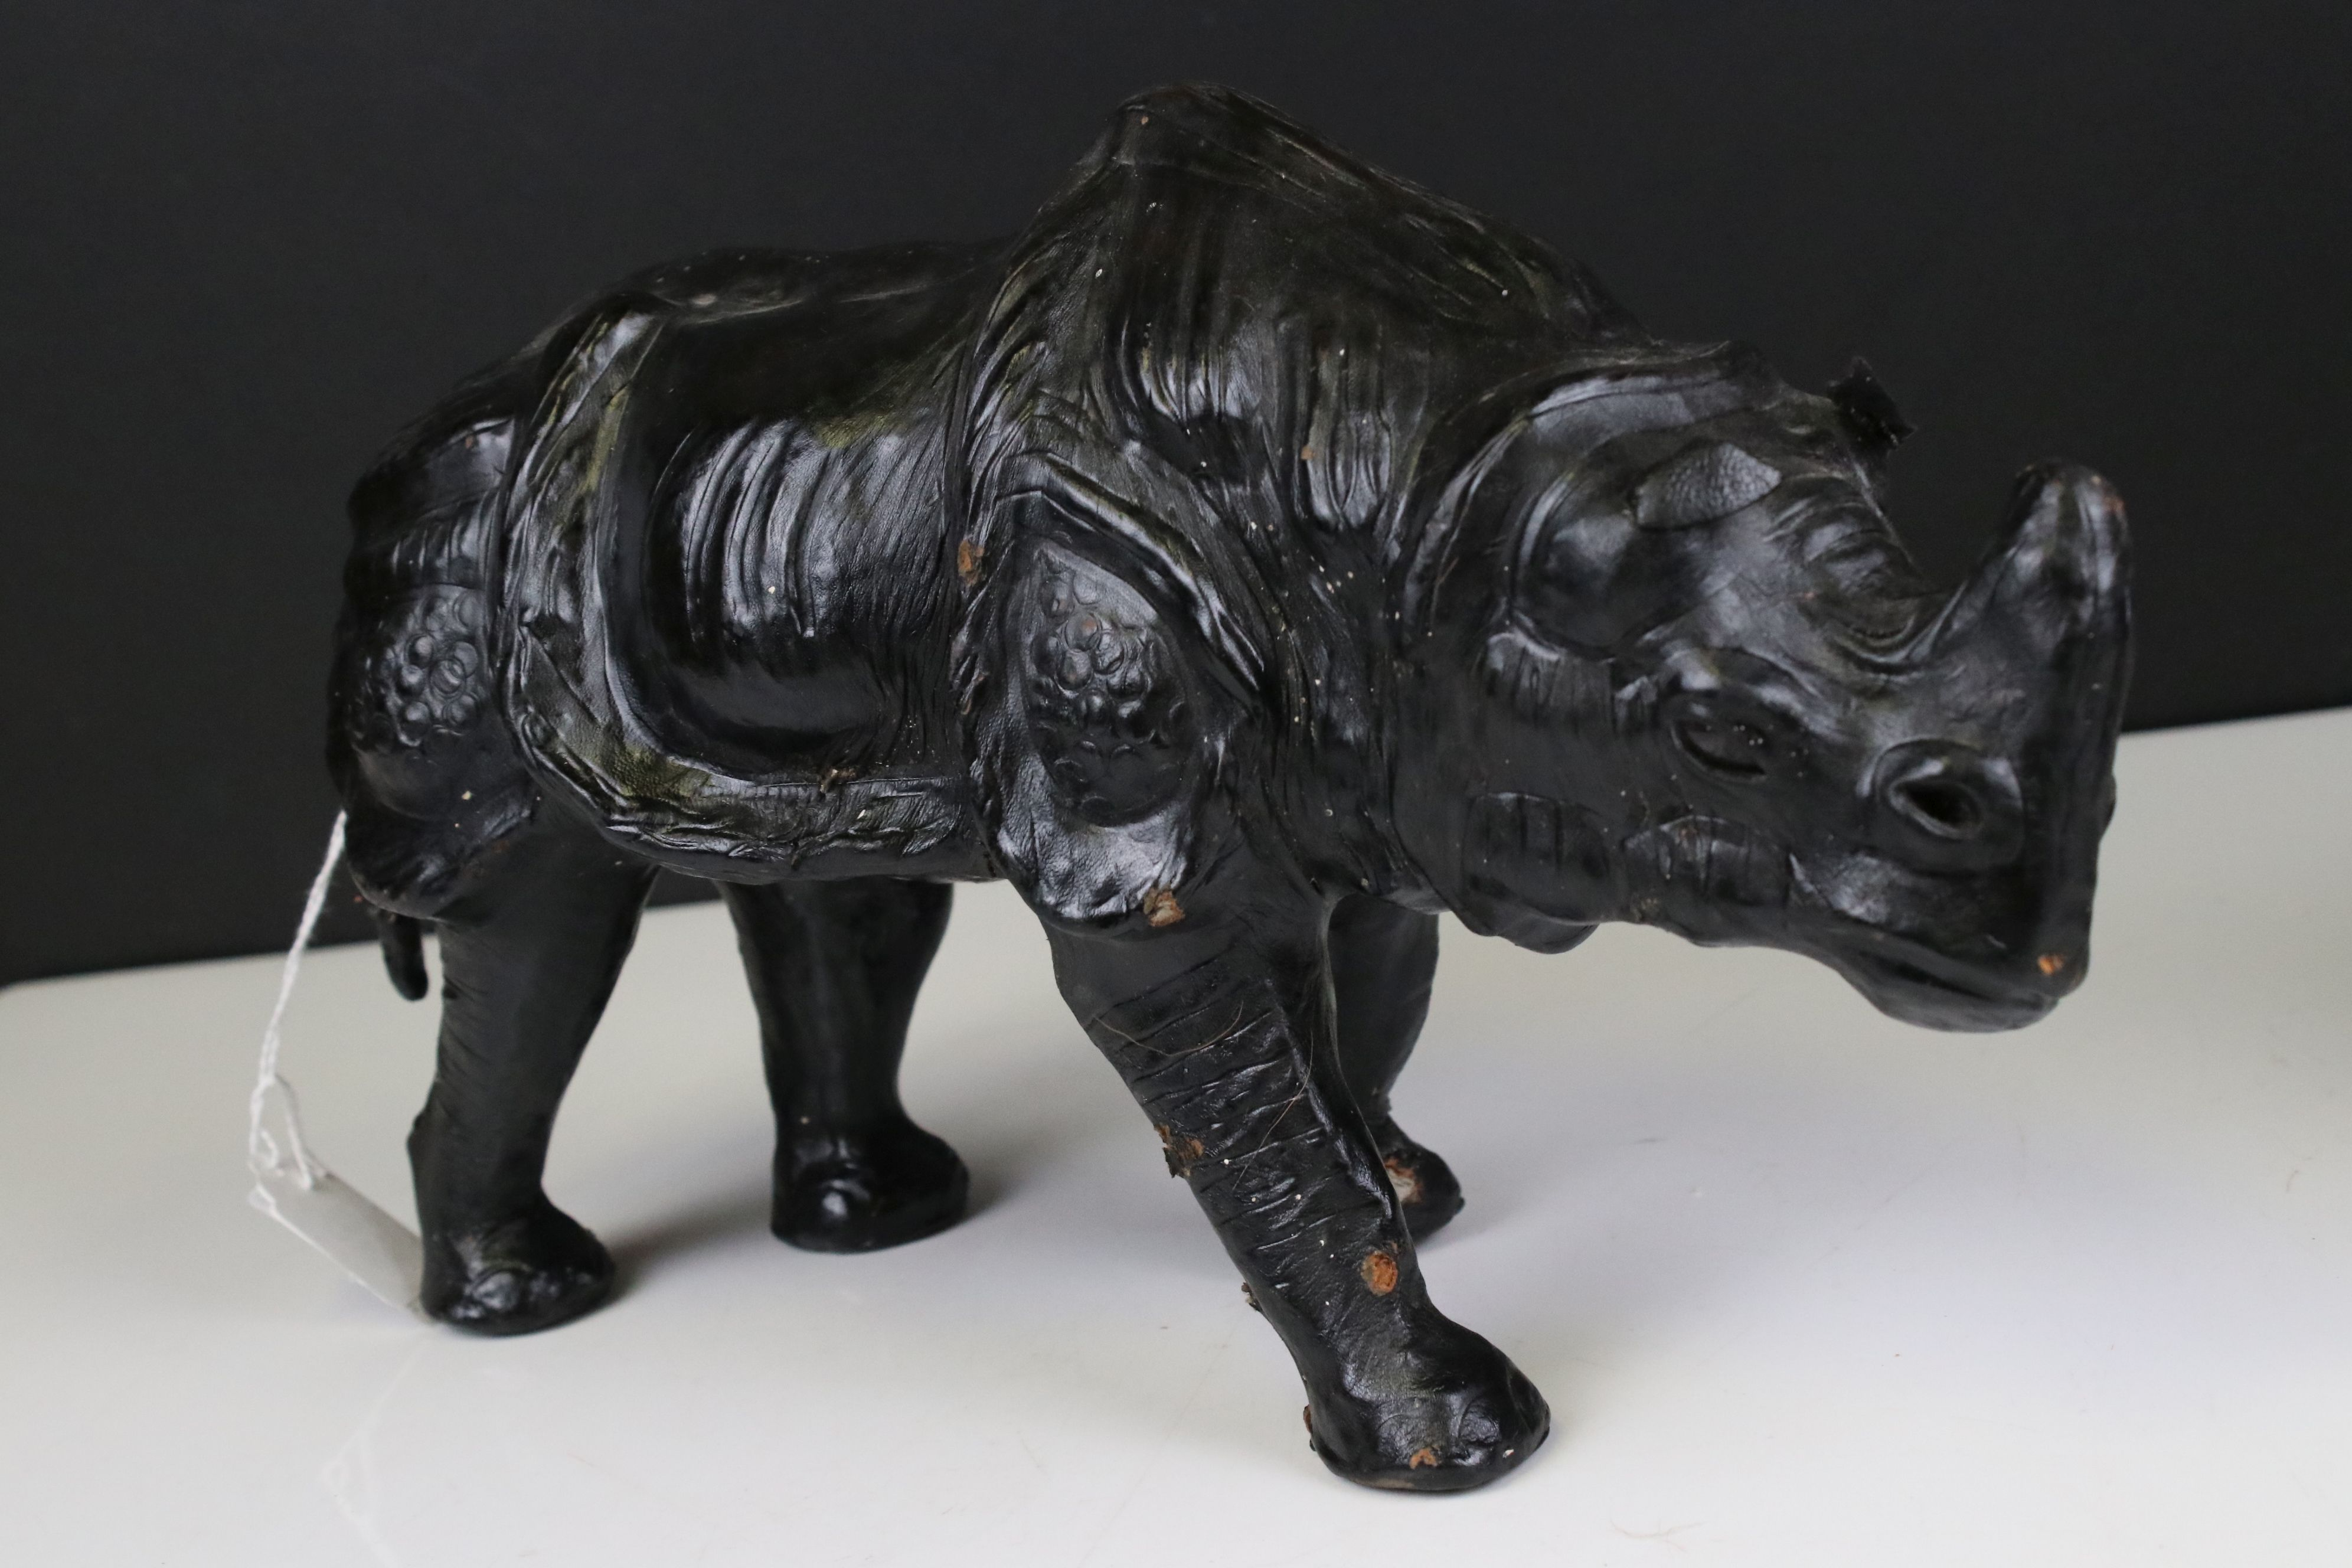 Pair of Leather covered models of Rhinoceros, 19cms high - Image 6 of 7